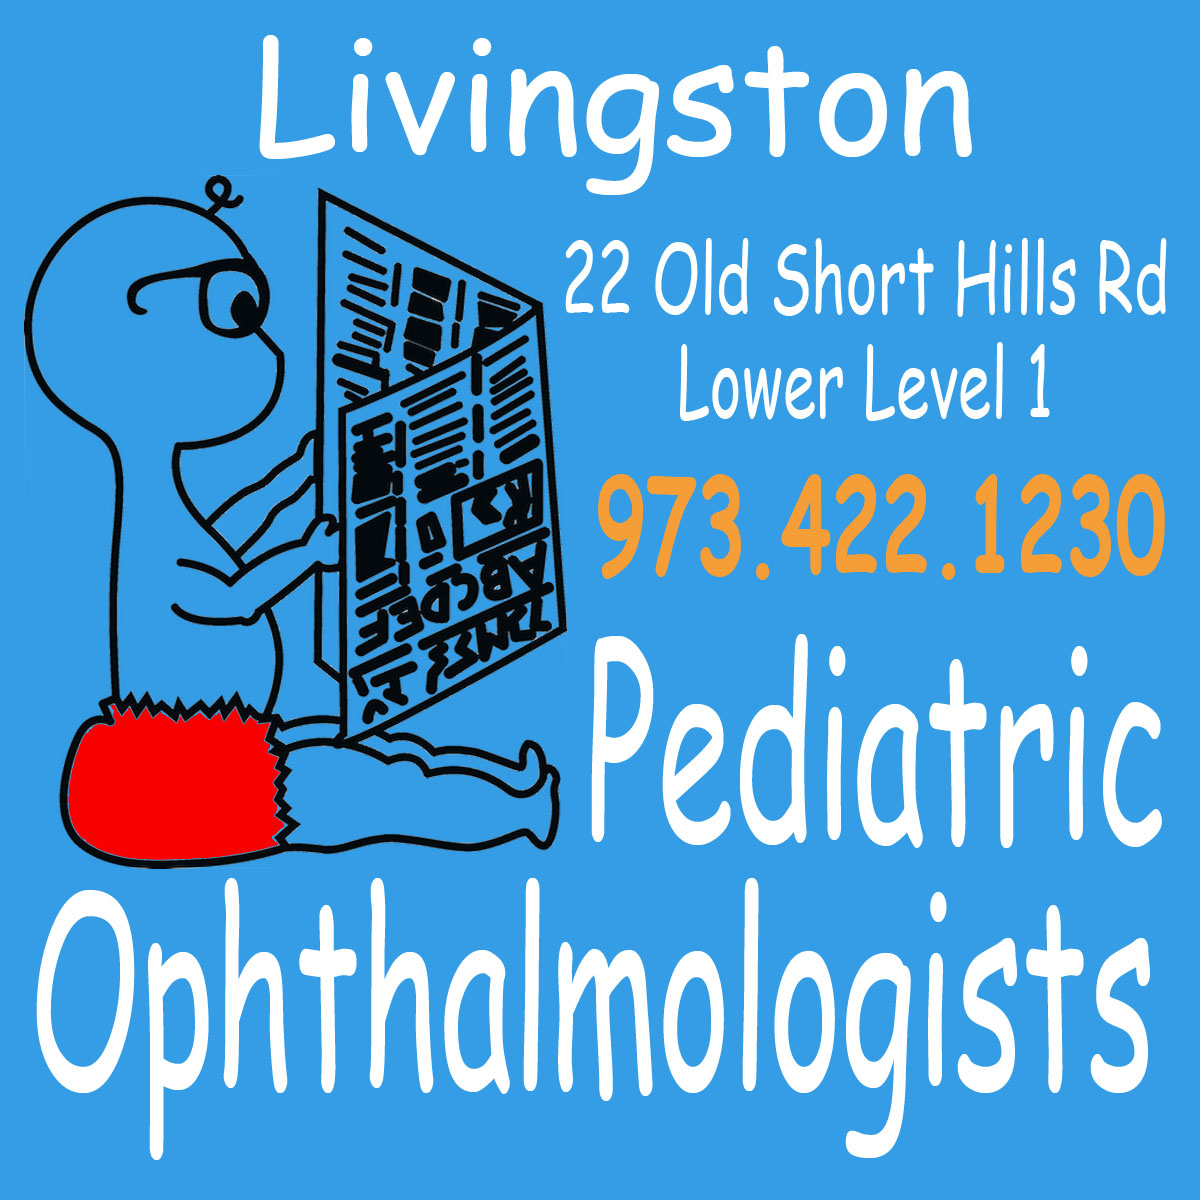 Pediatric Ophthalmologist Livingston, NJ